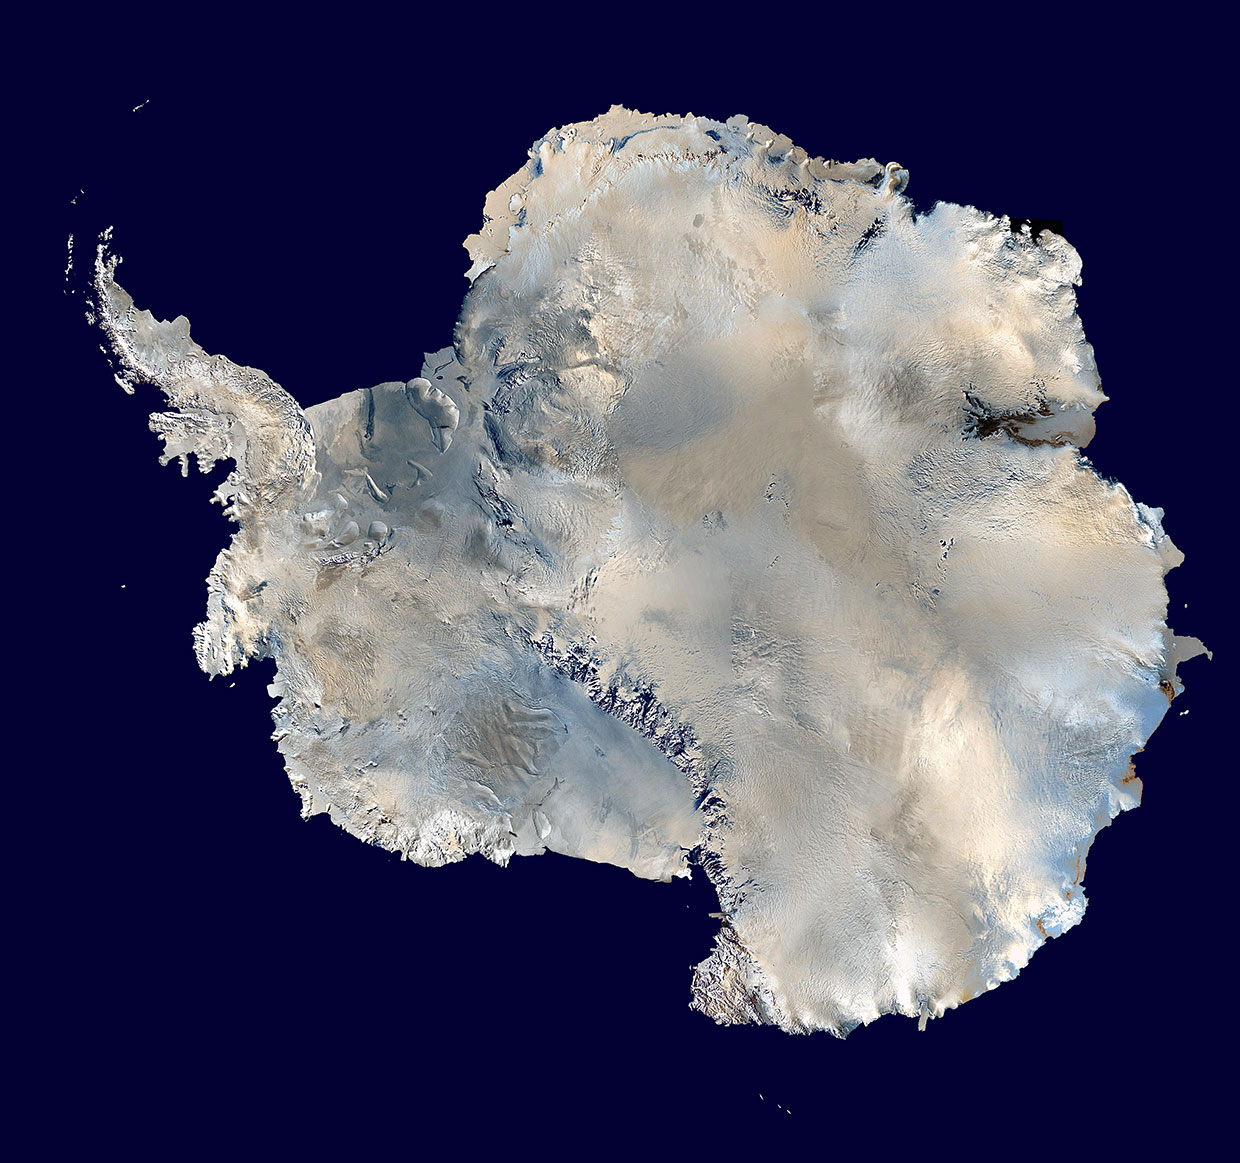 Satellite image of the continent of Antarctica